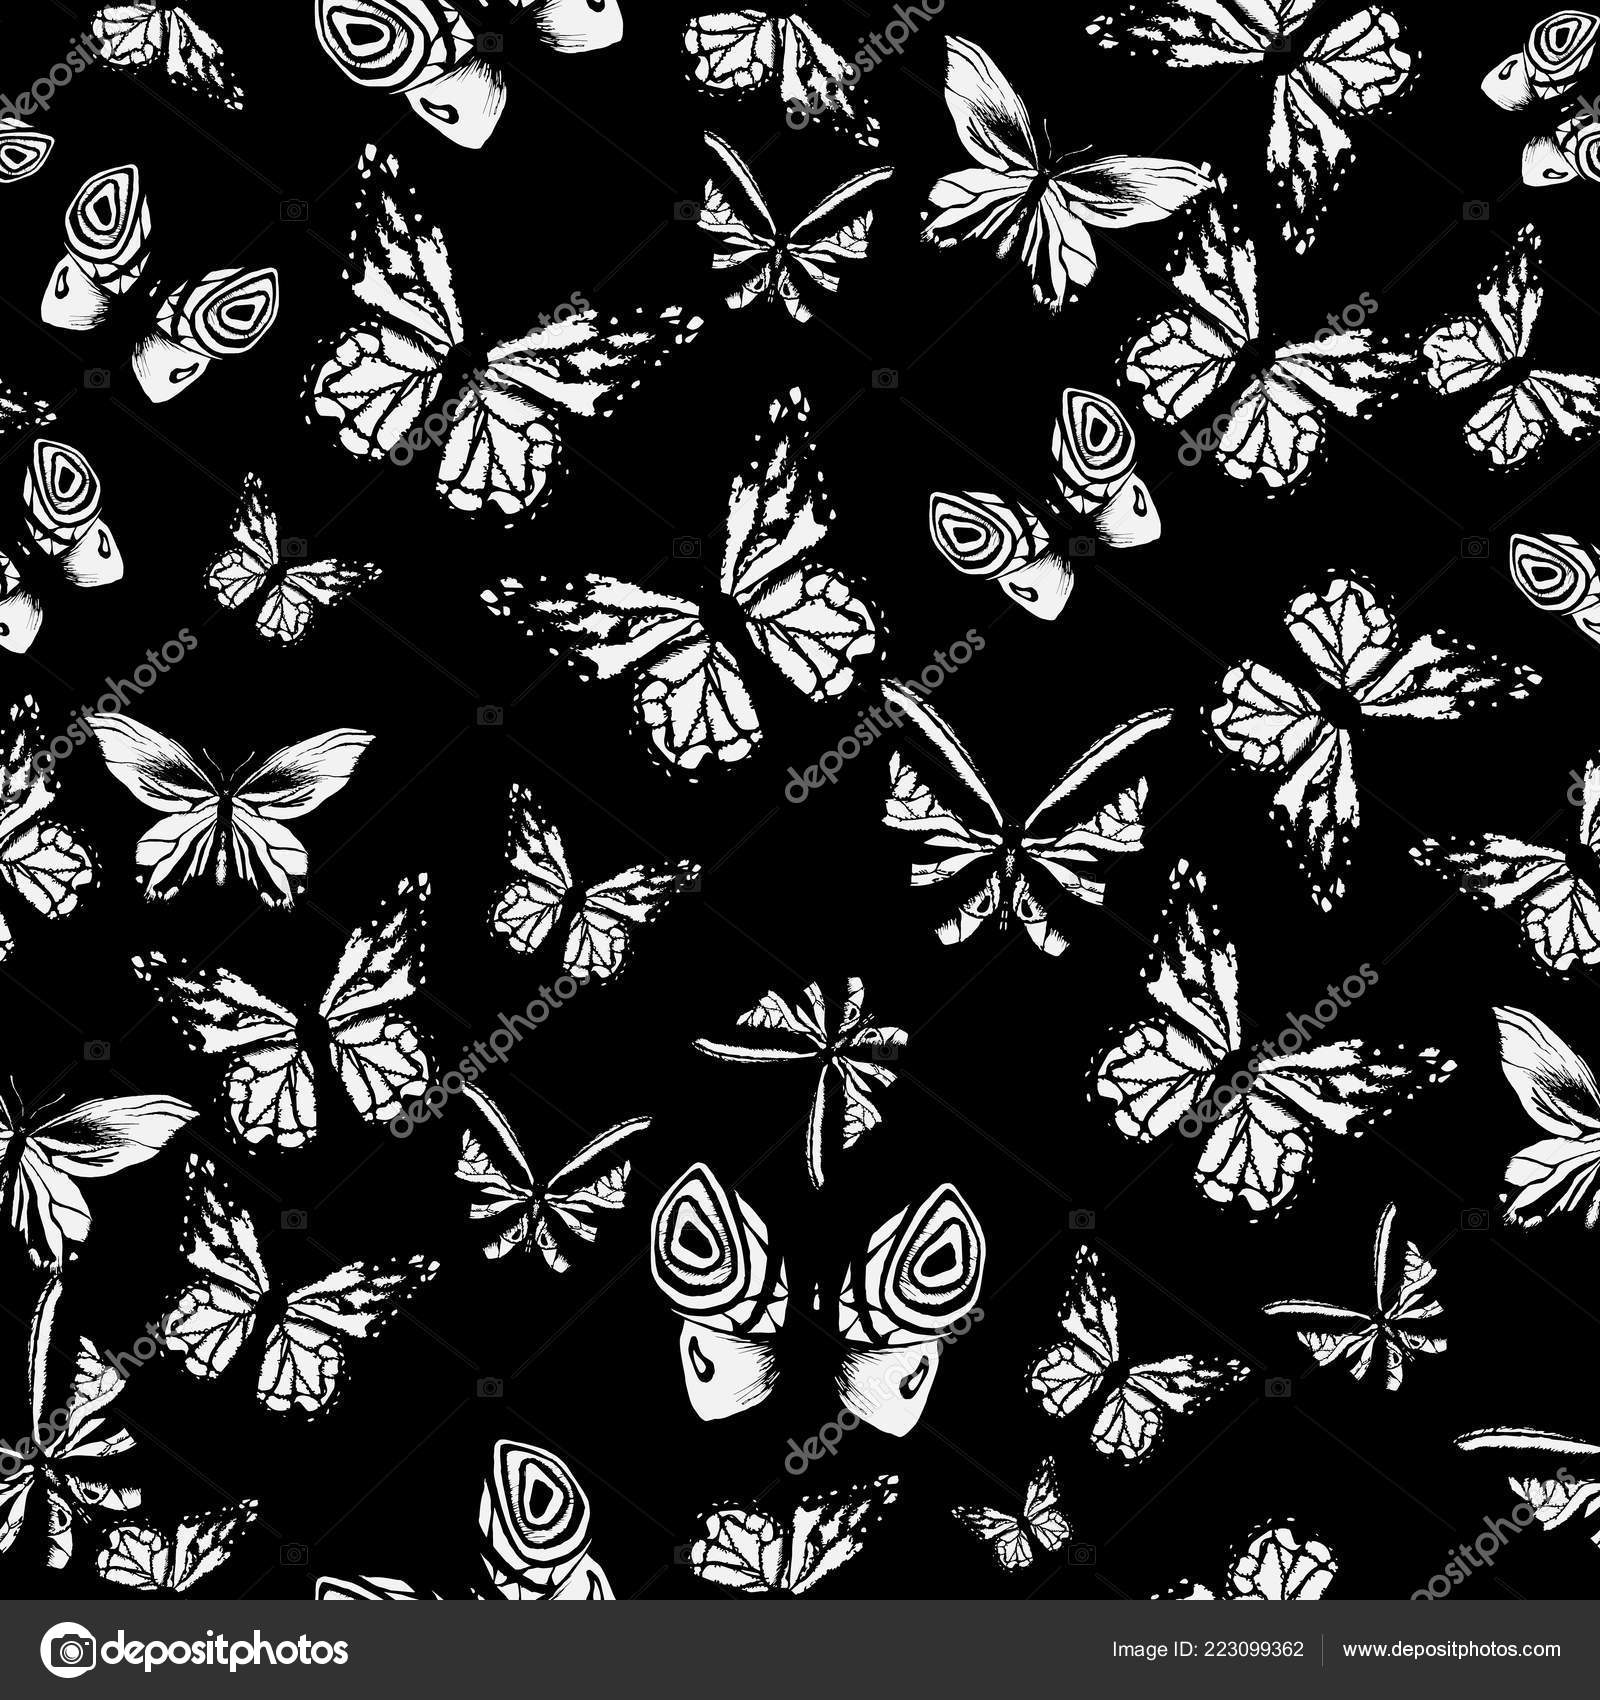 Unduh 960+ Background Vector Art Black And White Terbaik